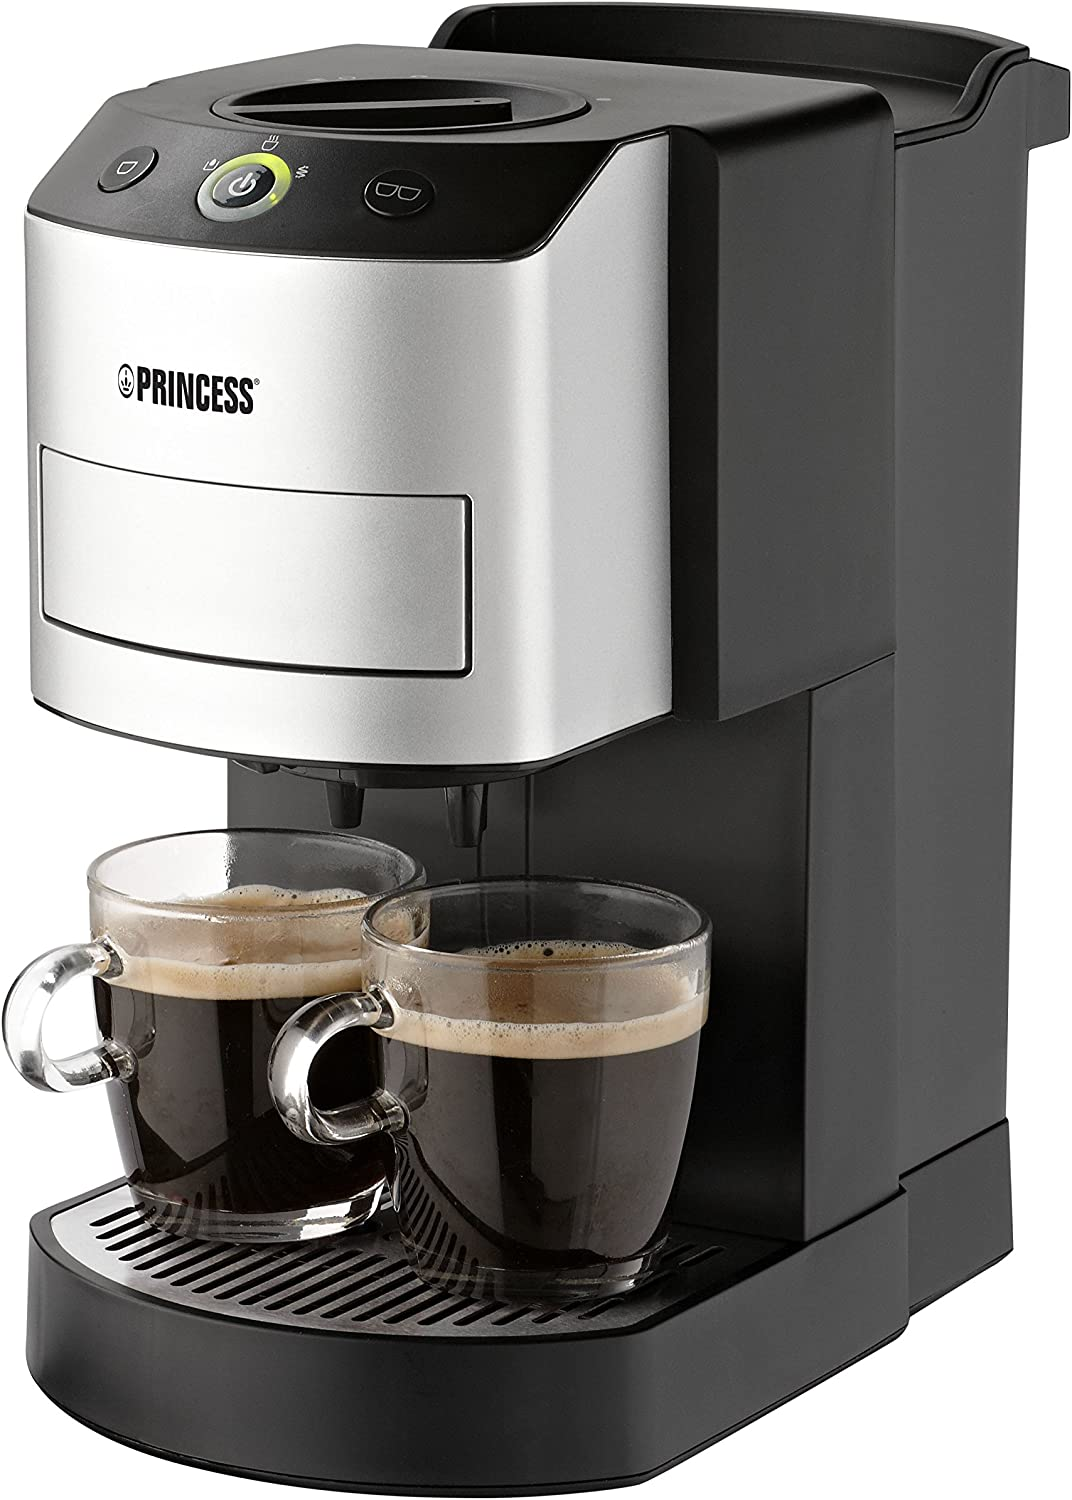 Princess 242800 - Cafetera con capacidad de 1 l, color plateado ...